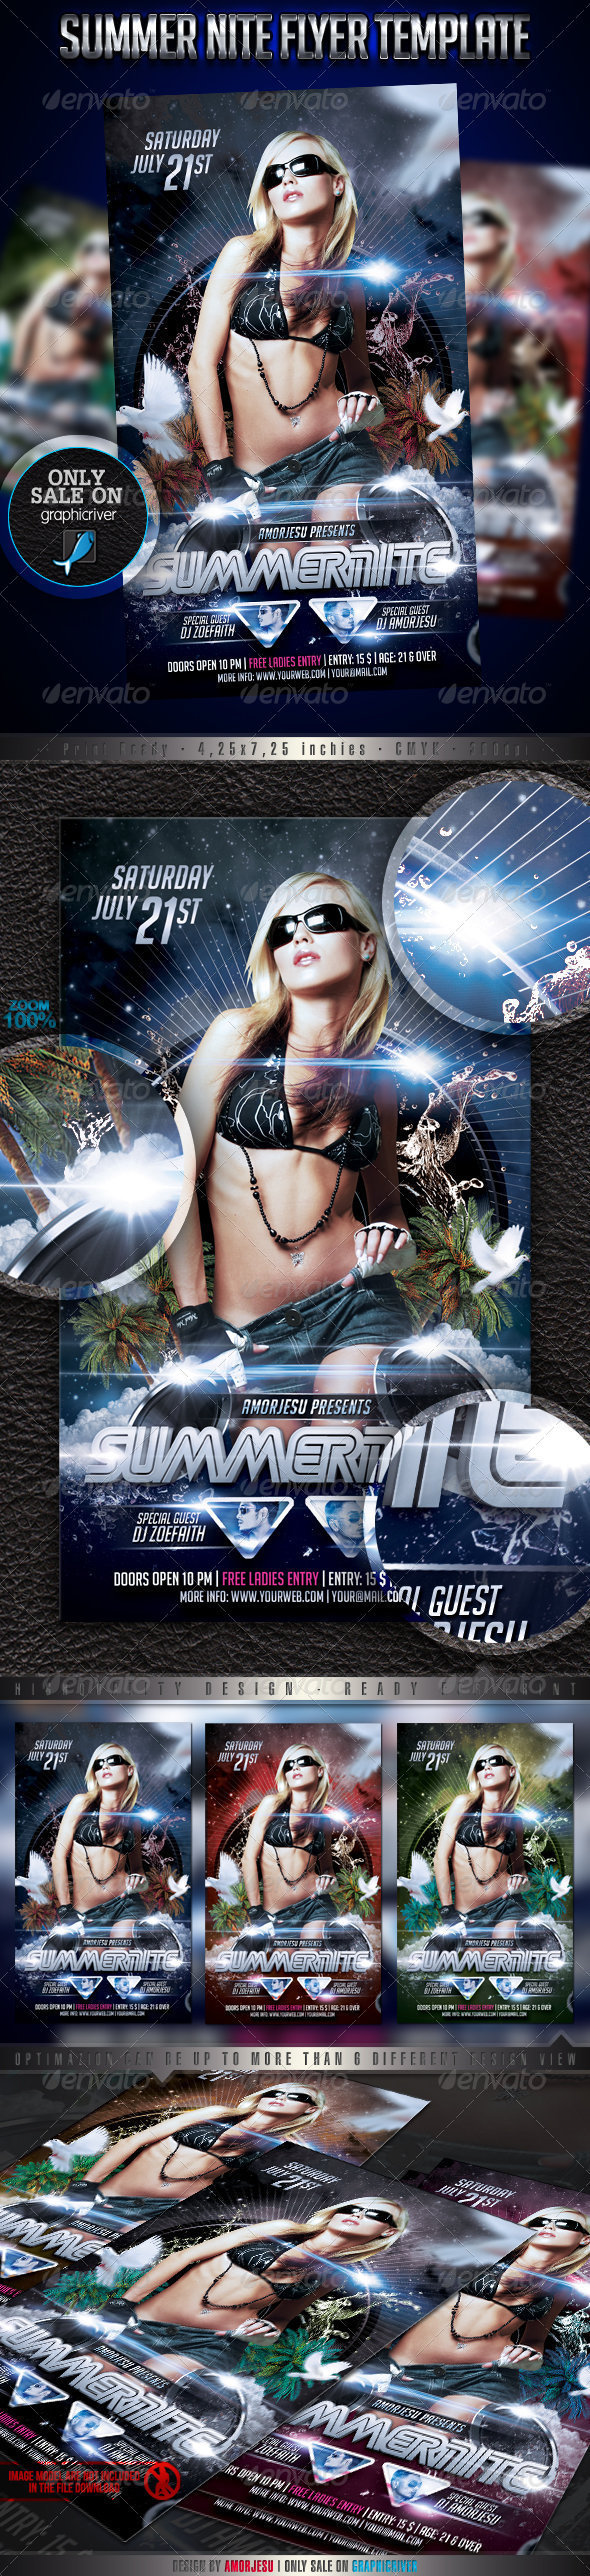 Summer Nite Flyer Template - Events Flyers